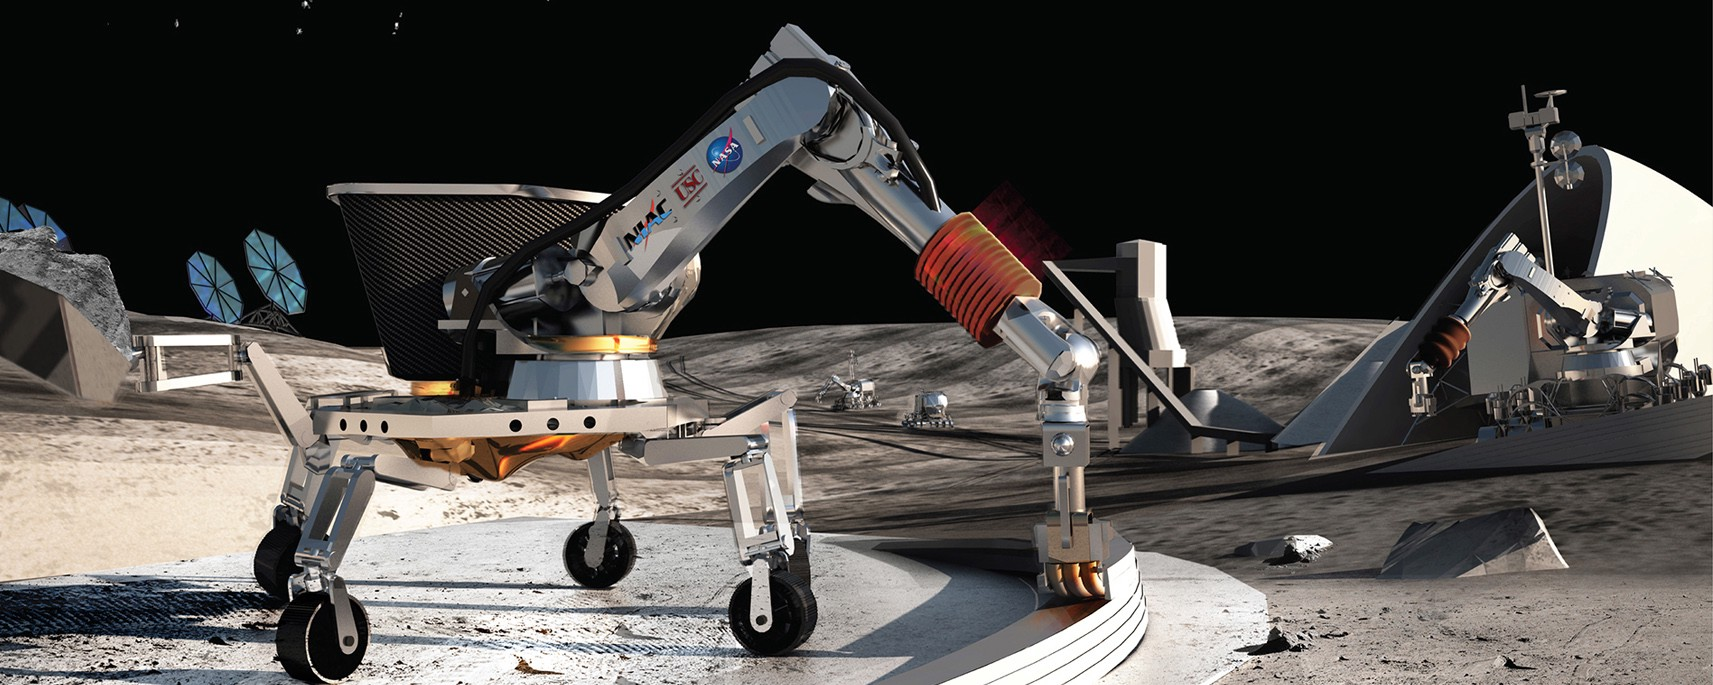 Here's How Robots Could Autonomously Build On Mars